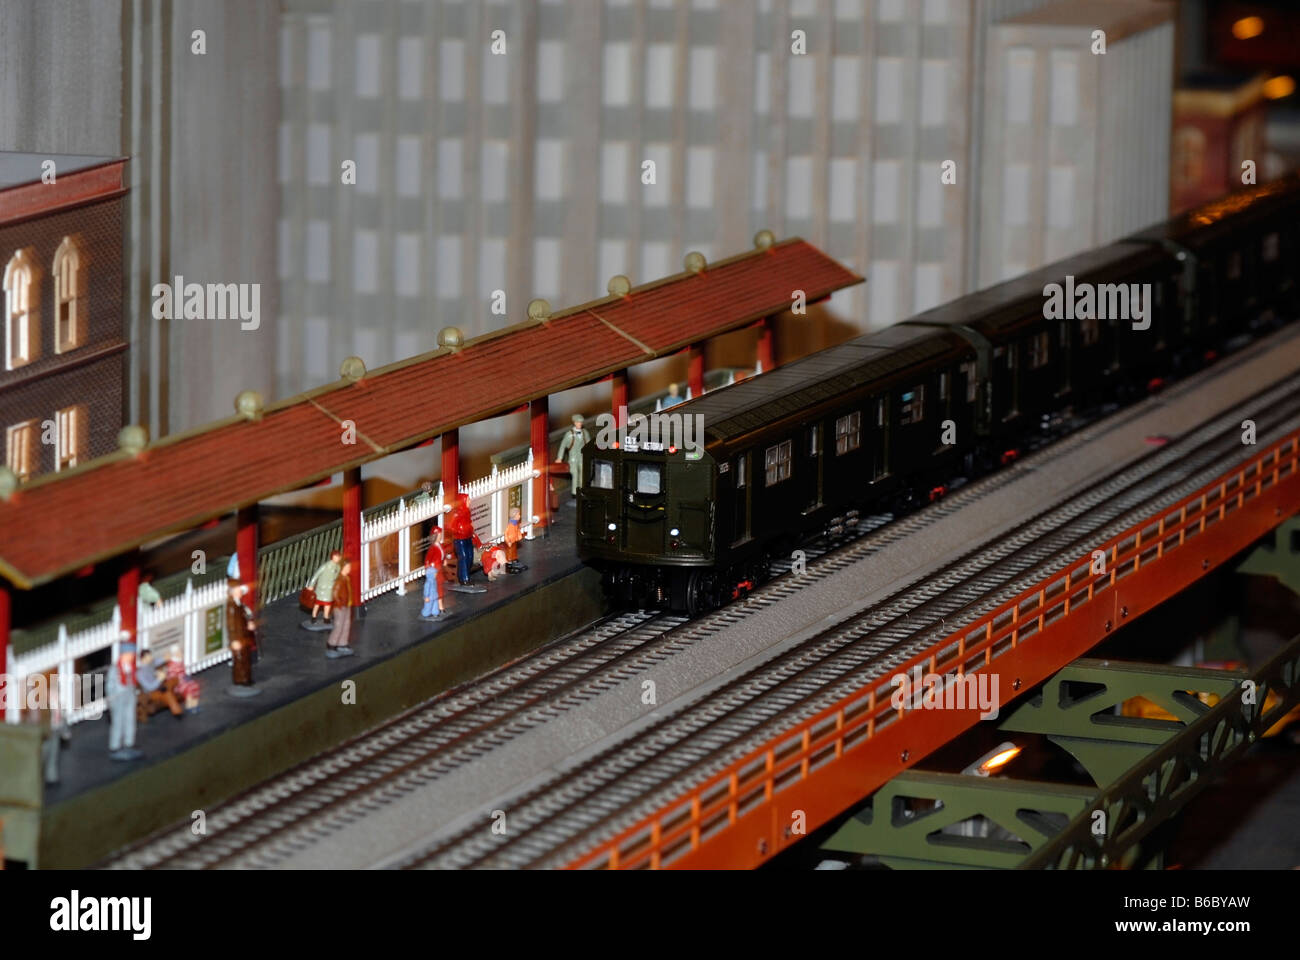 Christmas model railroad exhibit at the New York City Transit Museum in Grand Central Terminal in New York - Stock Image